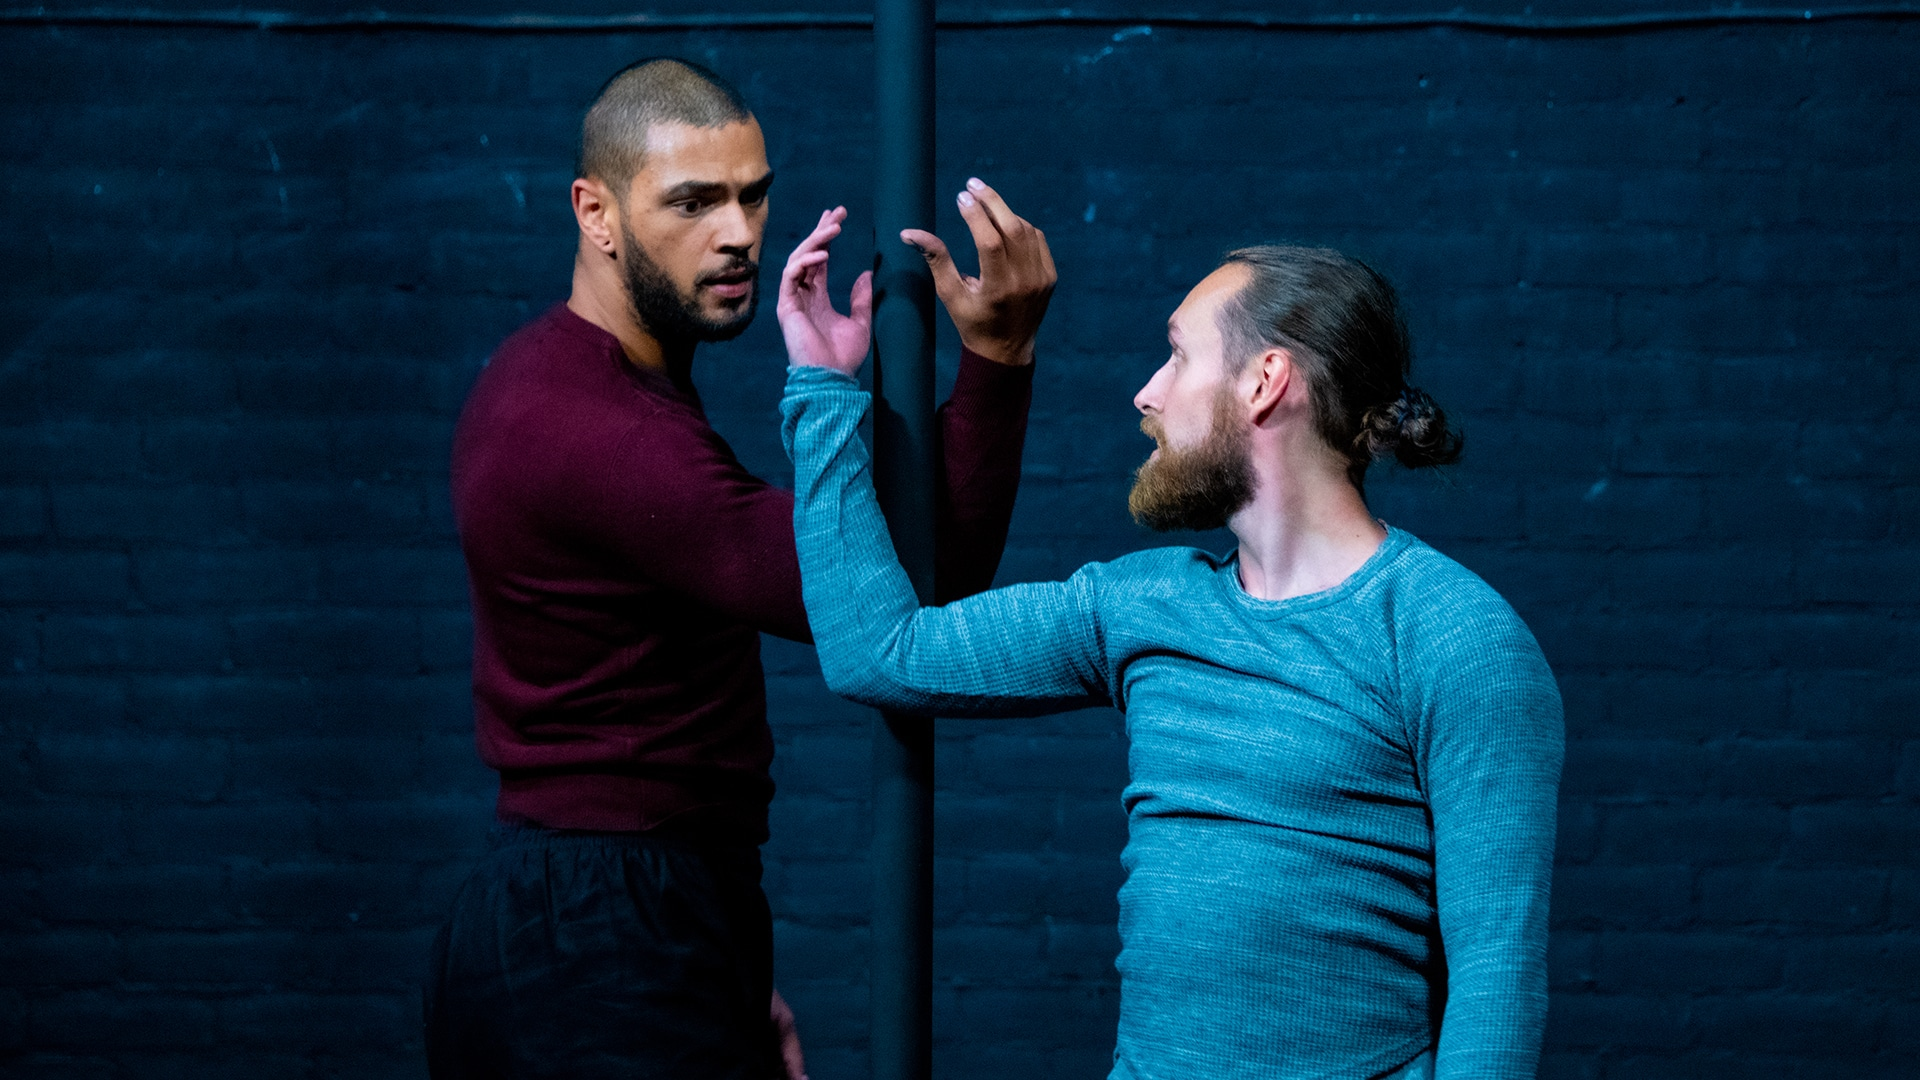 Sadiq Ali and Hauk Pattison stare at one another their arms bent and almost entwined